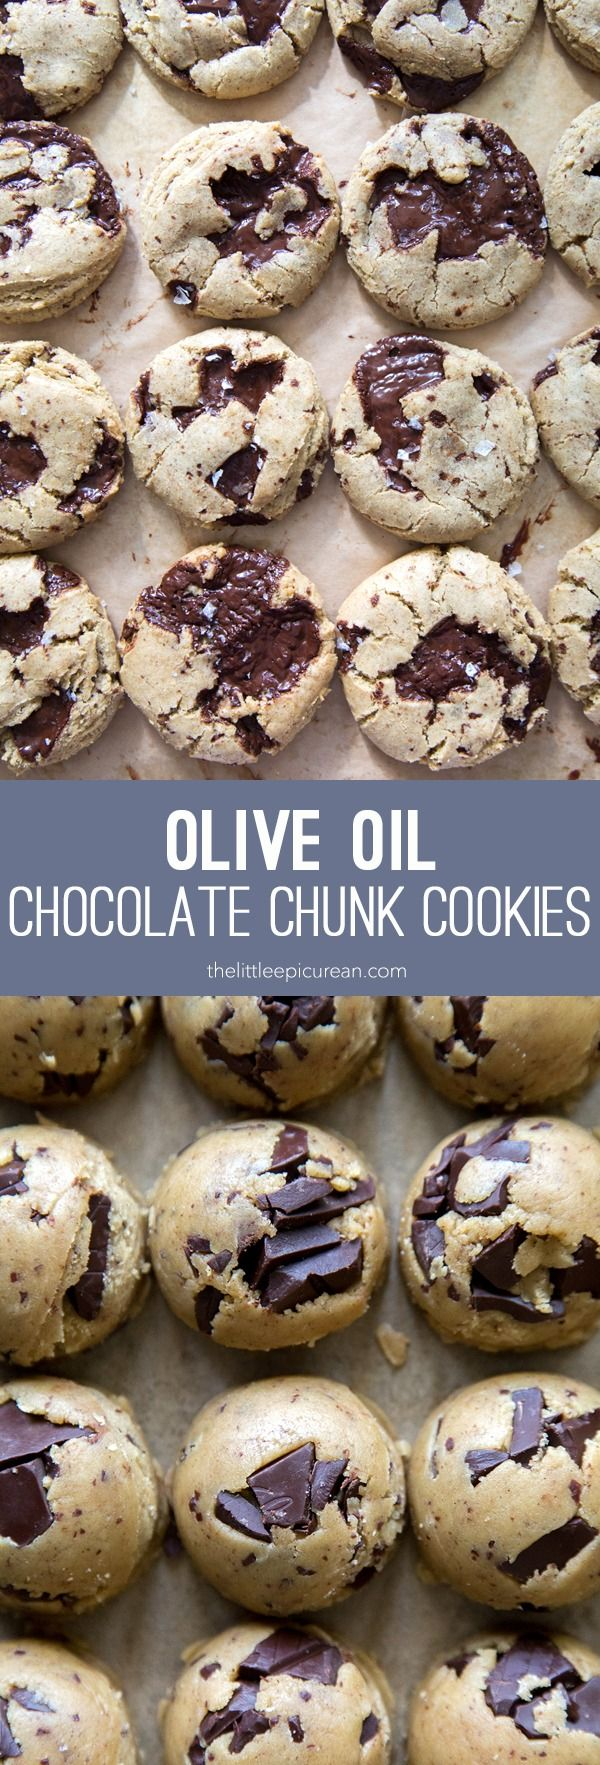 This weekend, we're whipping up Olive Oil Chocolate Chunk Cookies by The Little Epicurean @thelittleepicurean . She perfected this recipe using our Lindt EXCELLENCE 70% and 90% Dark Chocolate bars